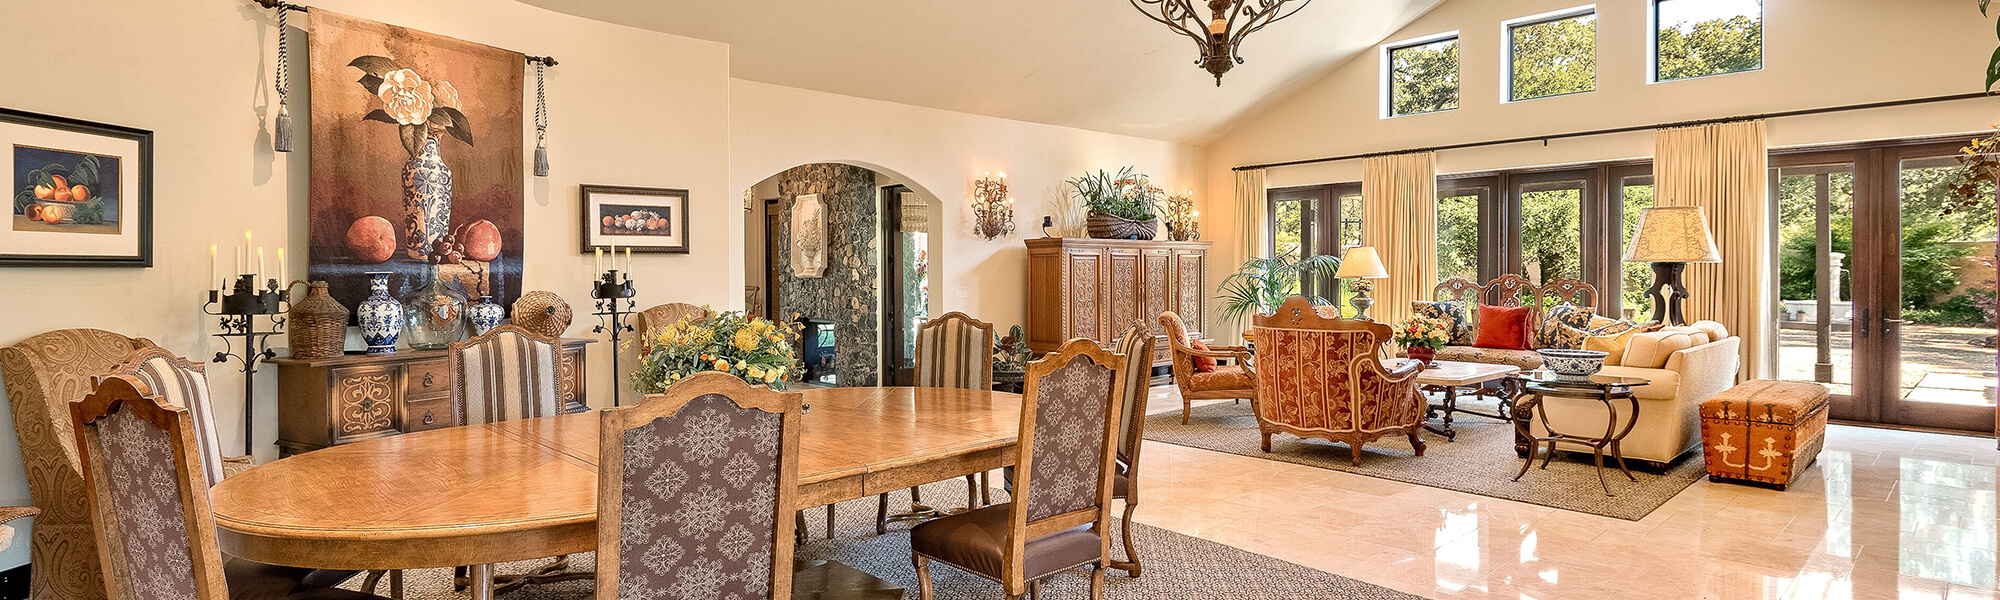 sonoma wine country vacation rental - home